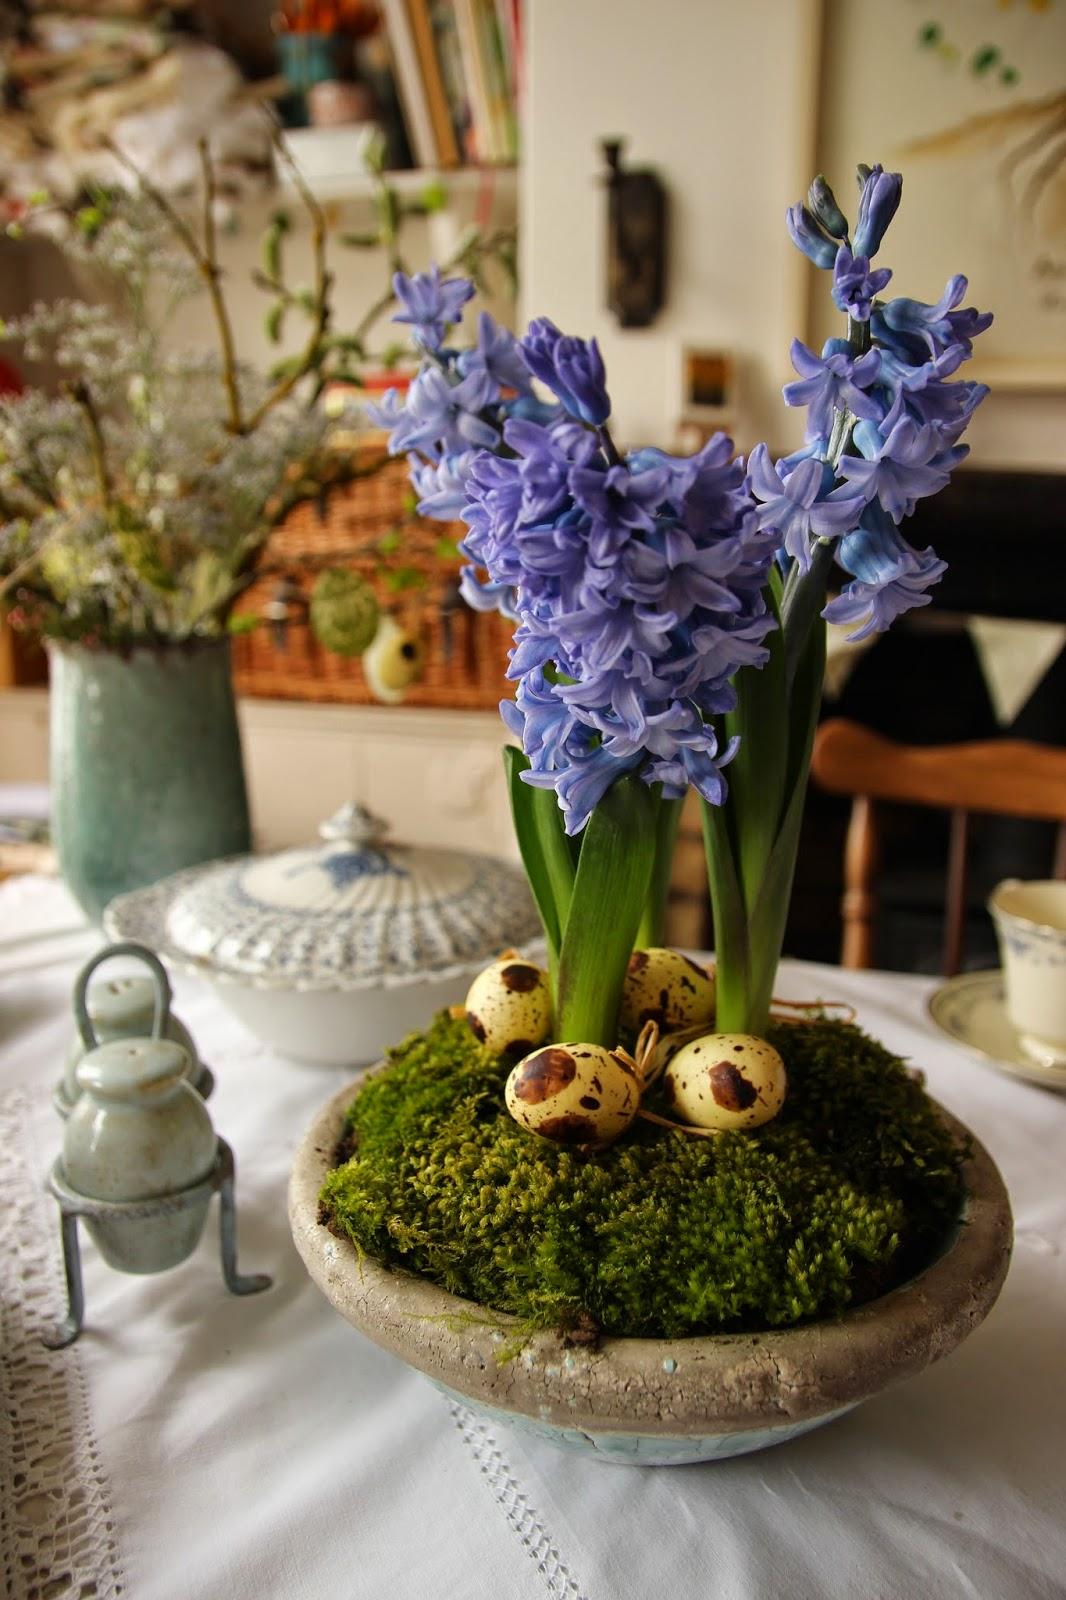 Hyacinths flower display